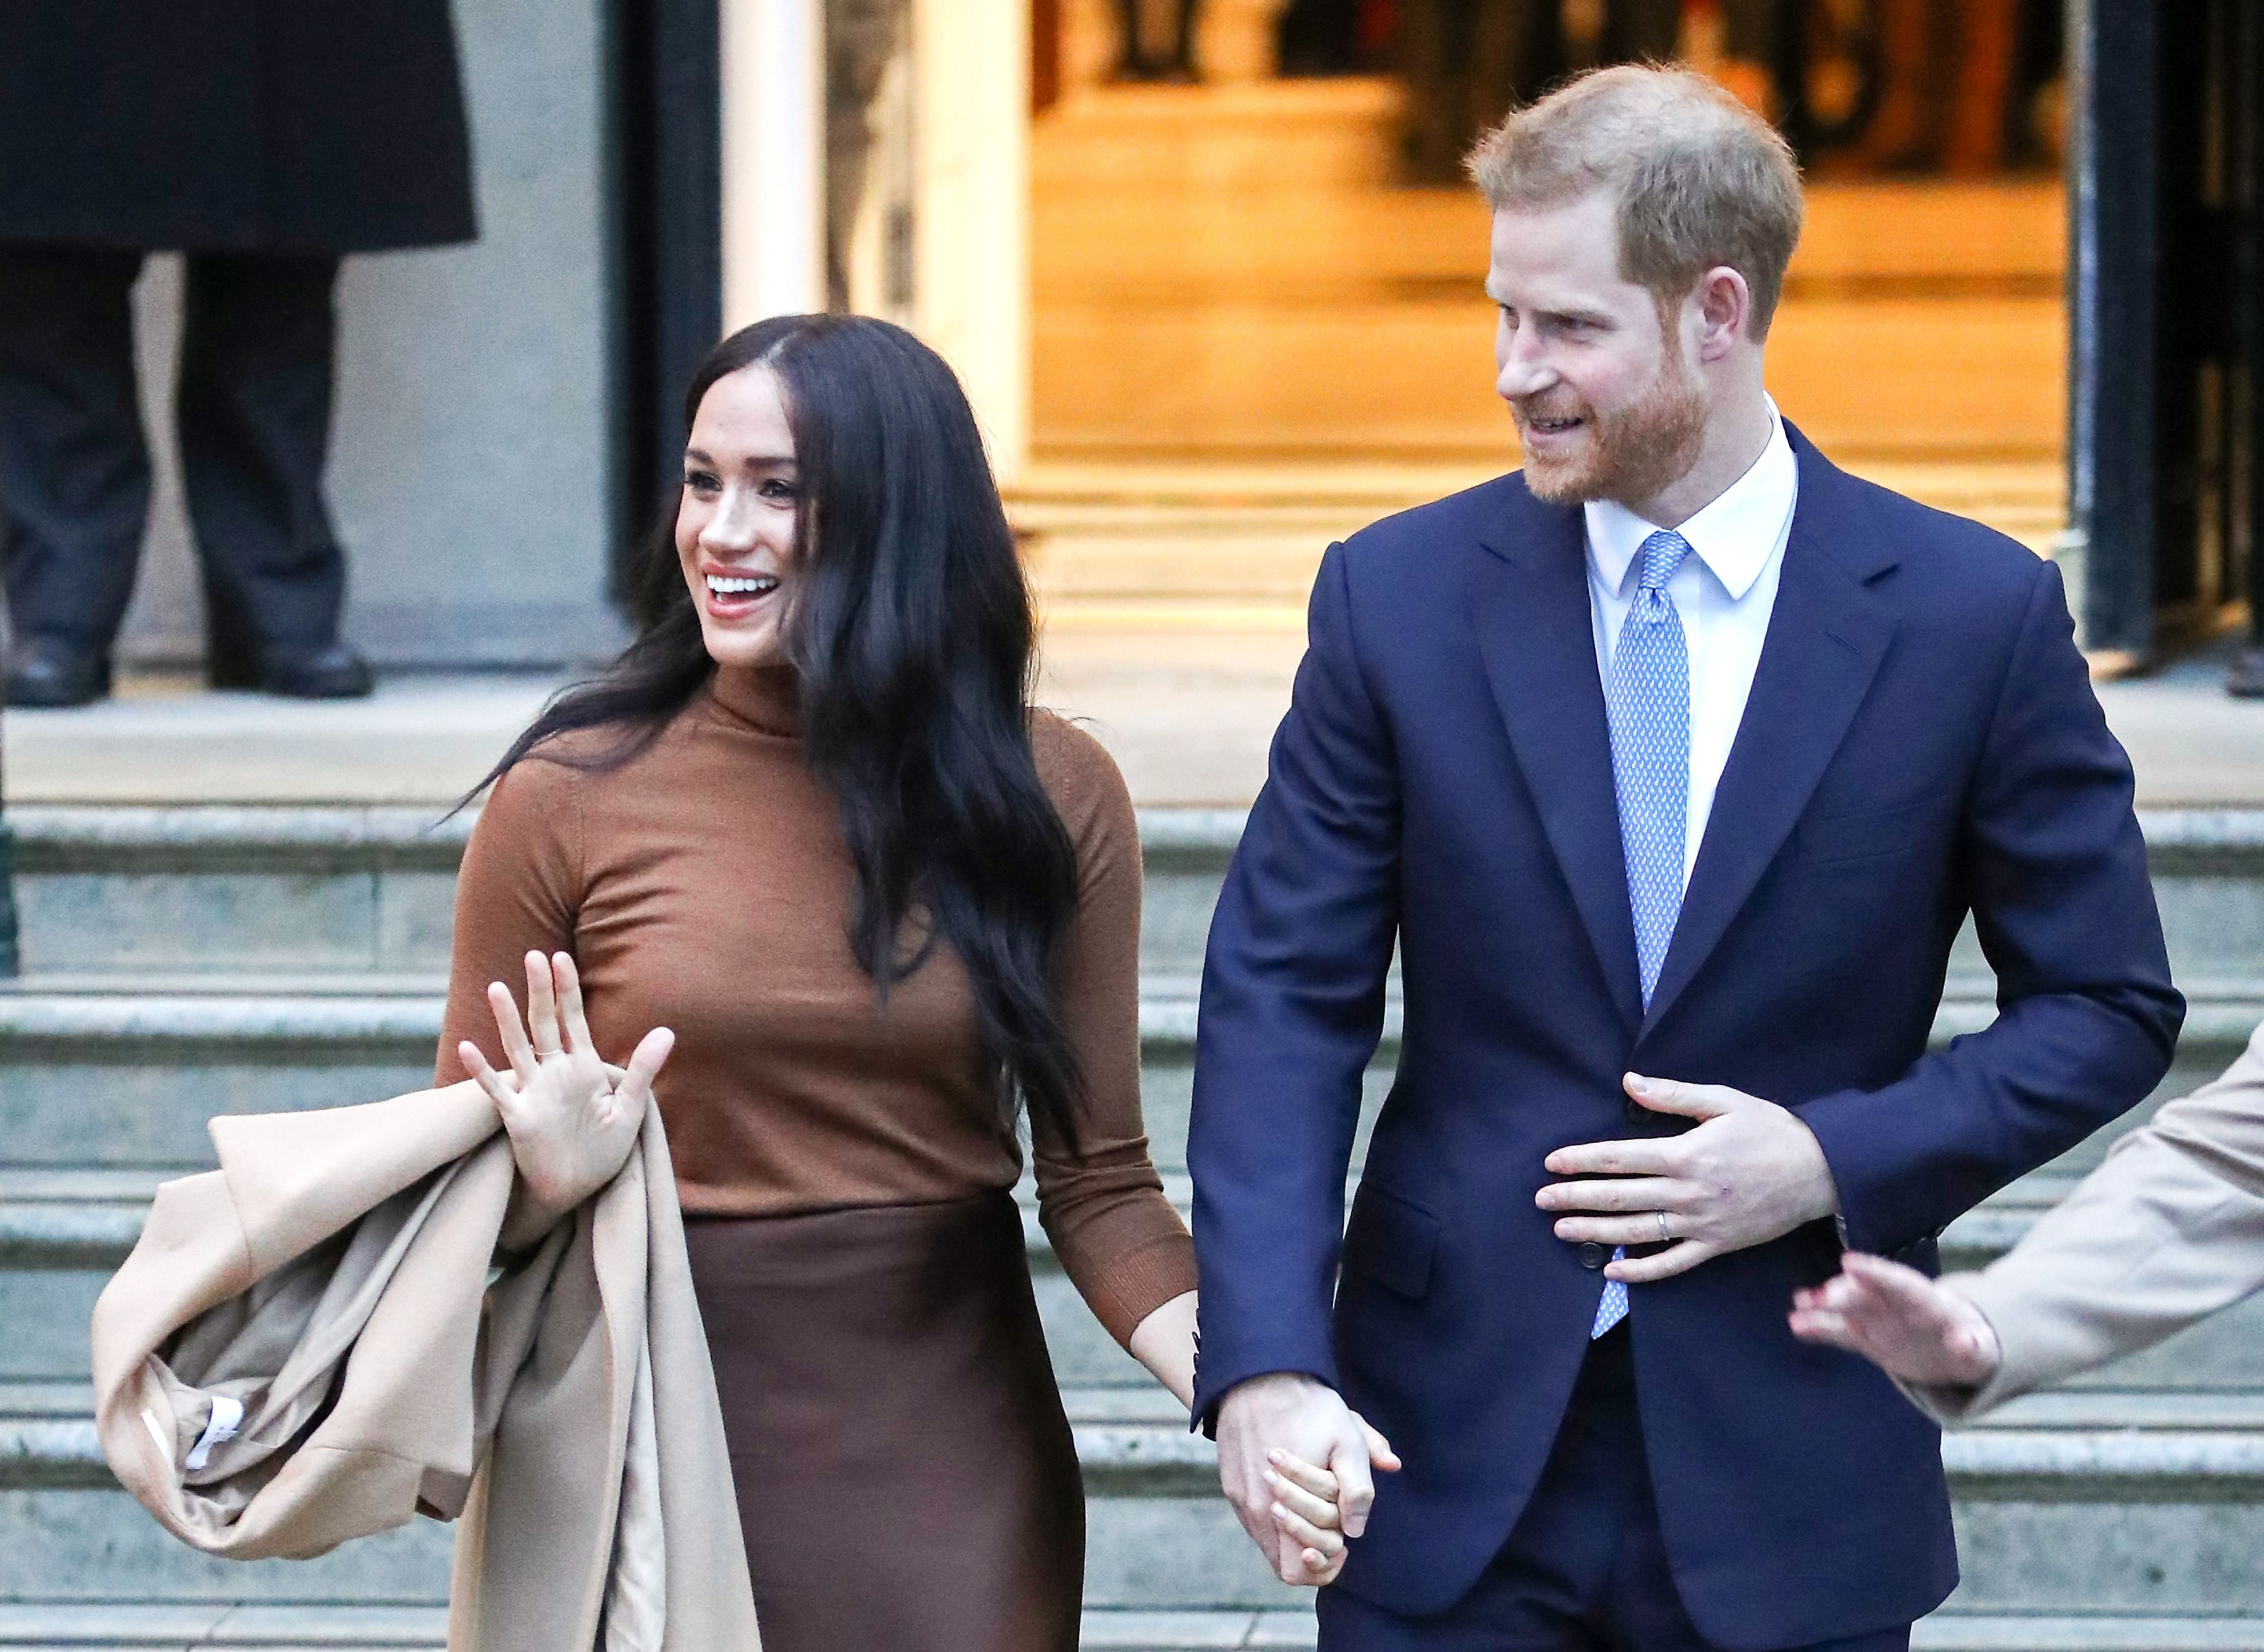 Meghan Markle and Prince Harry depart Canada House on January 07, 2020 in London, England.| Getty Images